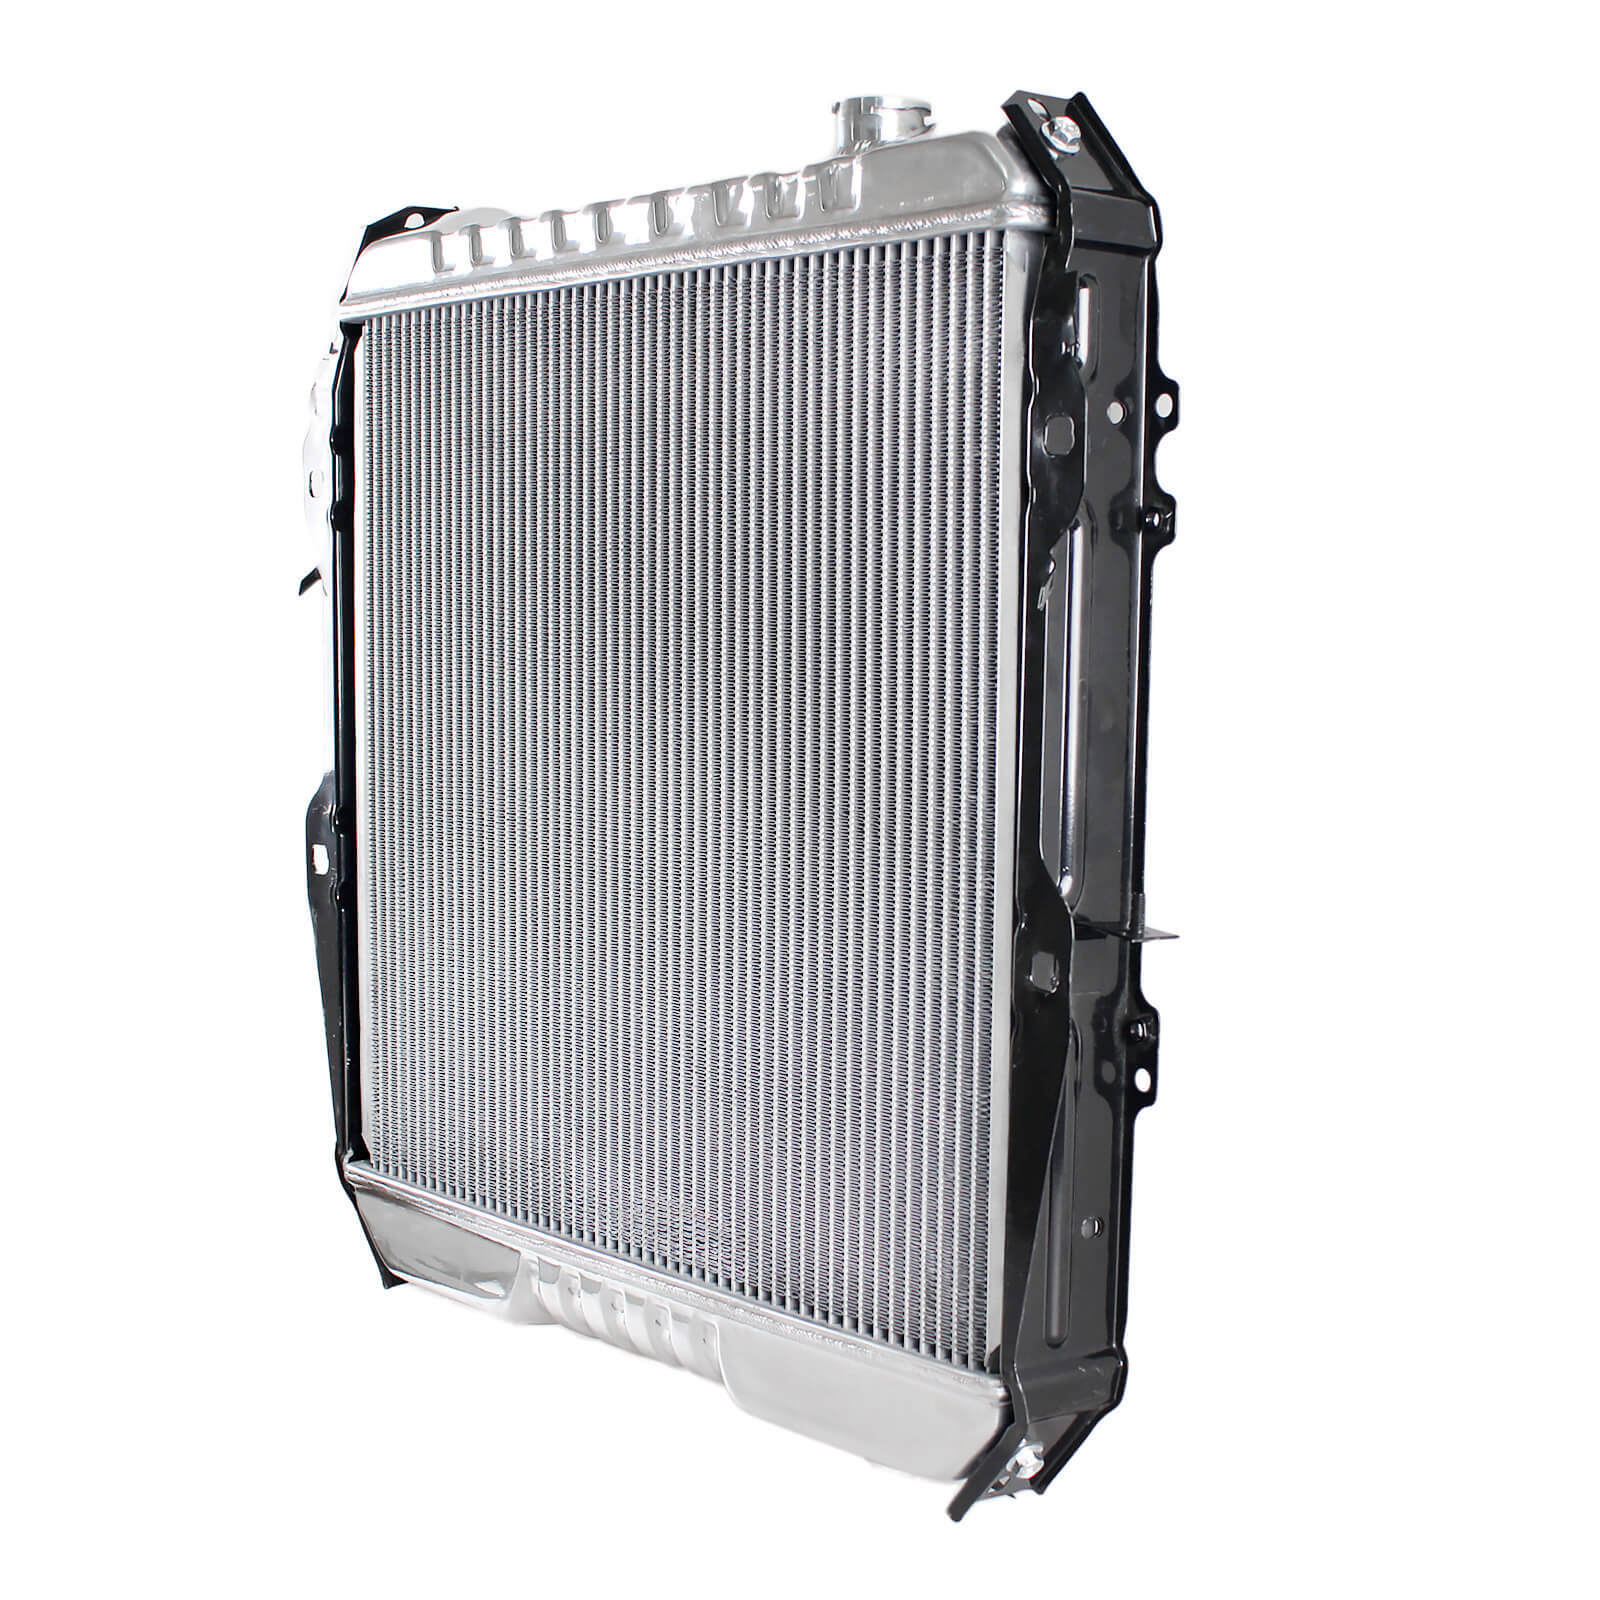 Dromedary-All Aluminum Radiator For Toyota Hilux Ln85 Ln86 28l 1988-1995 Manual-2